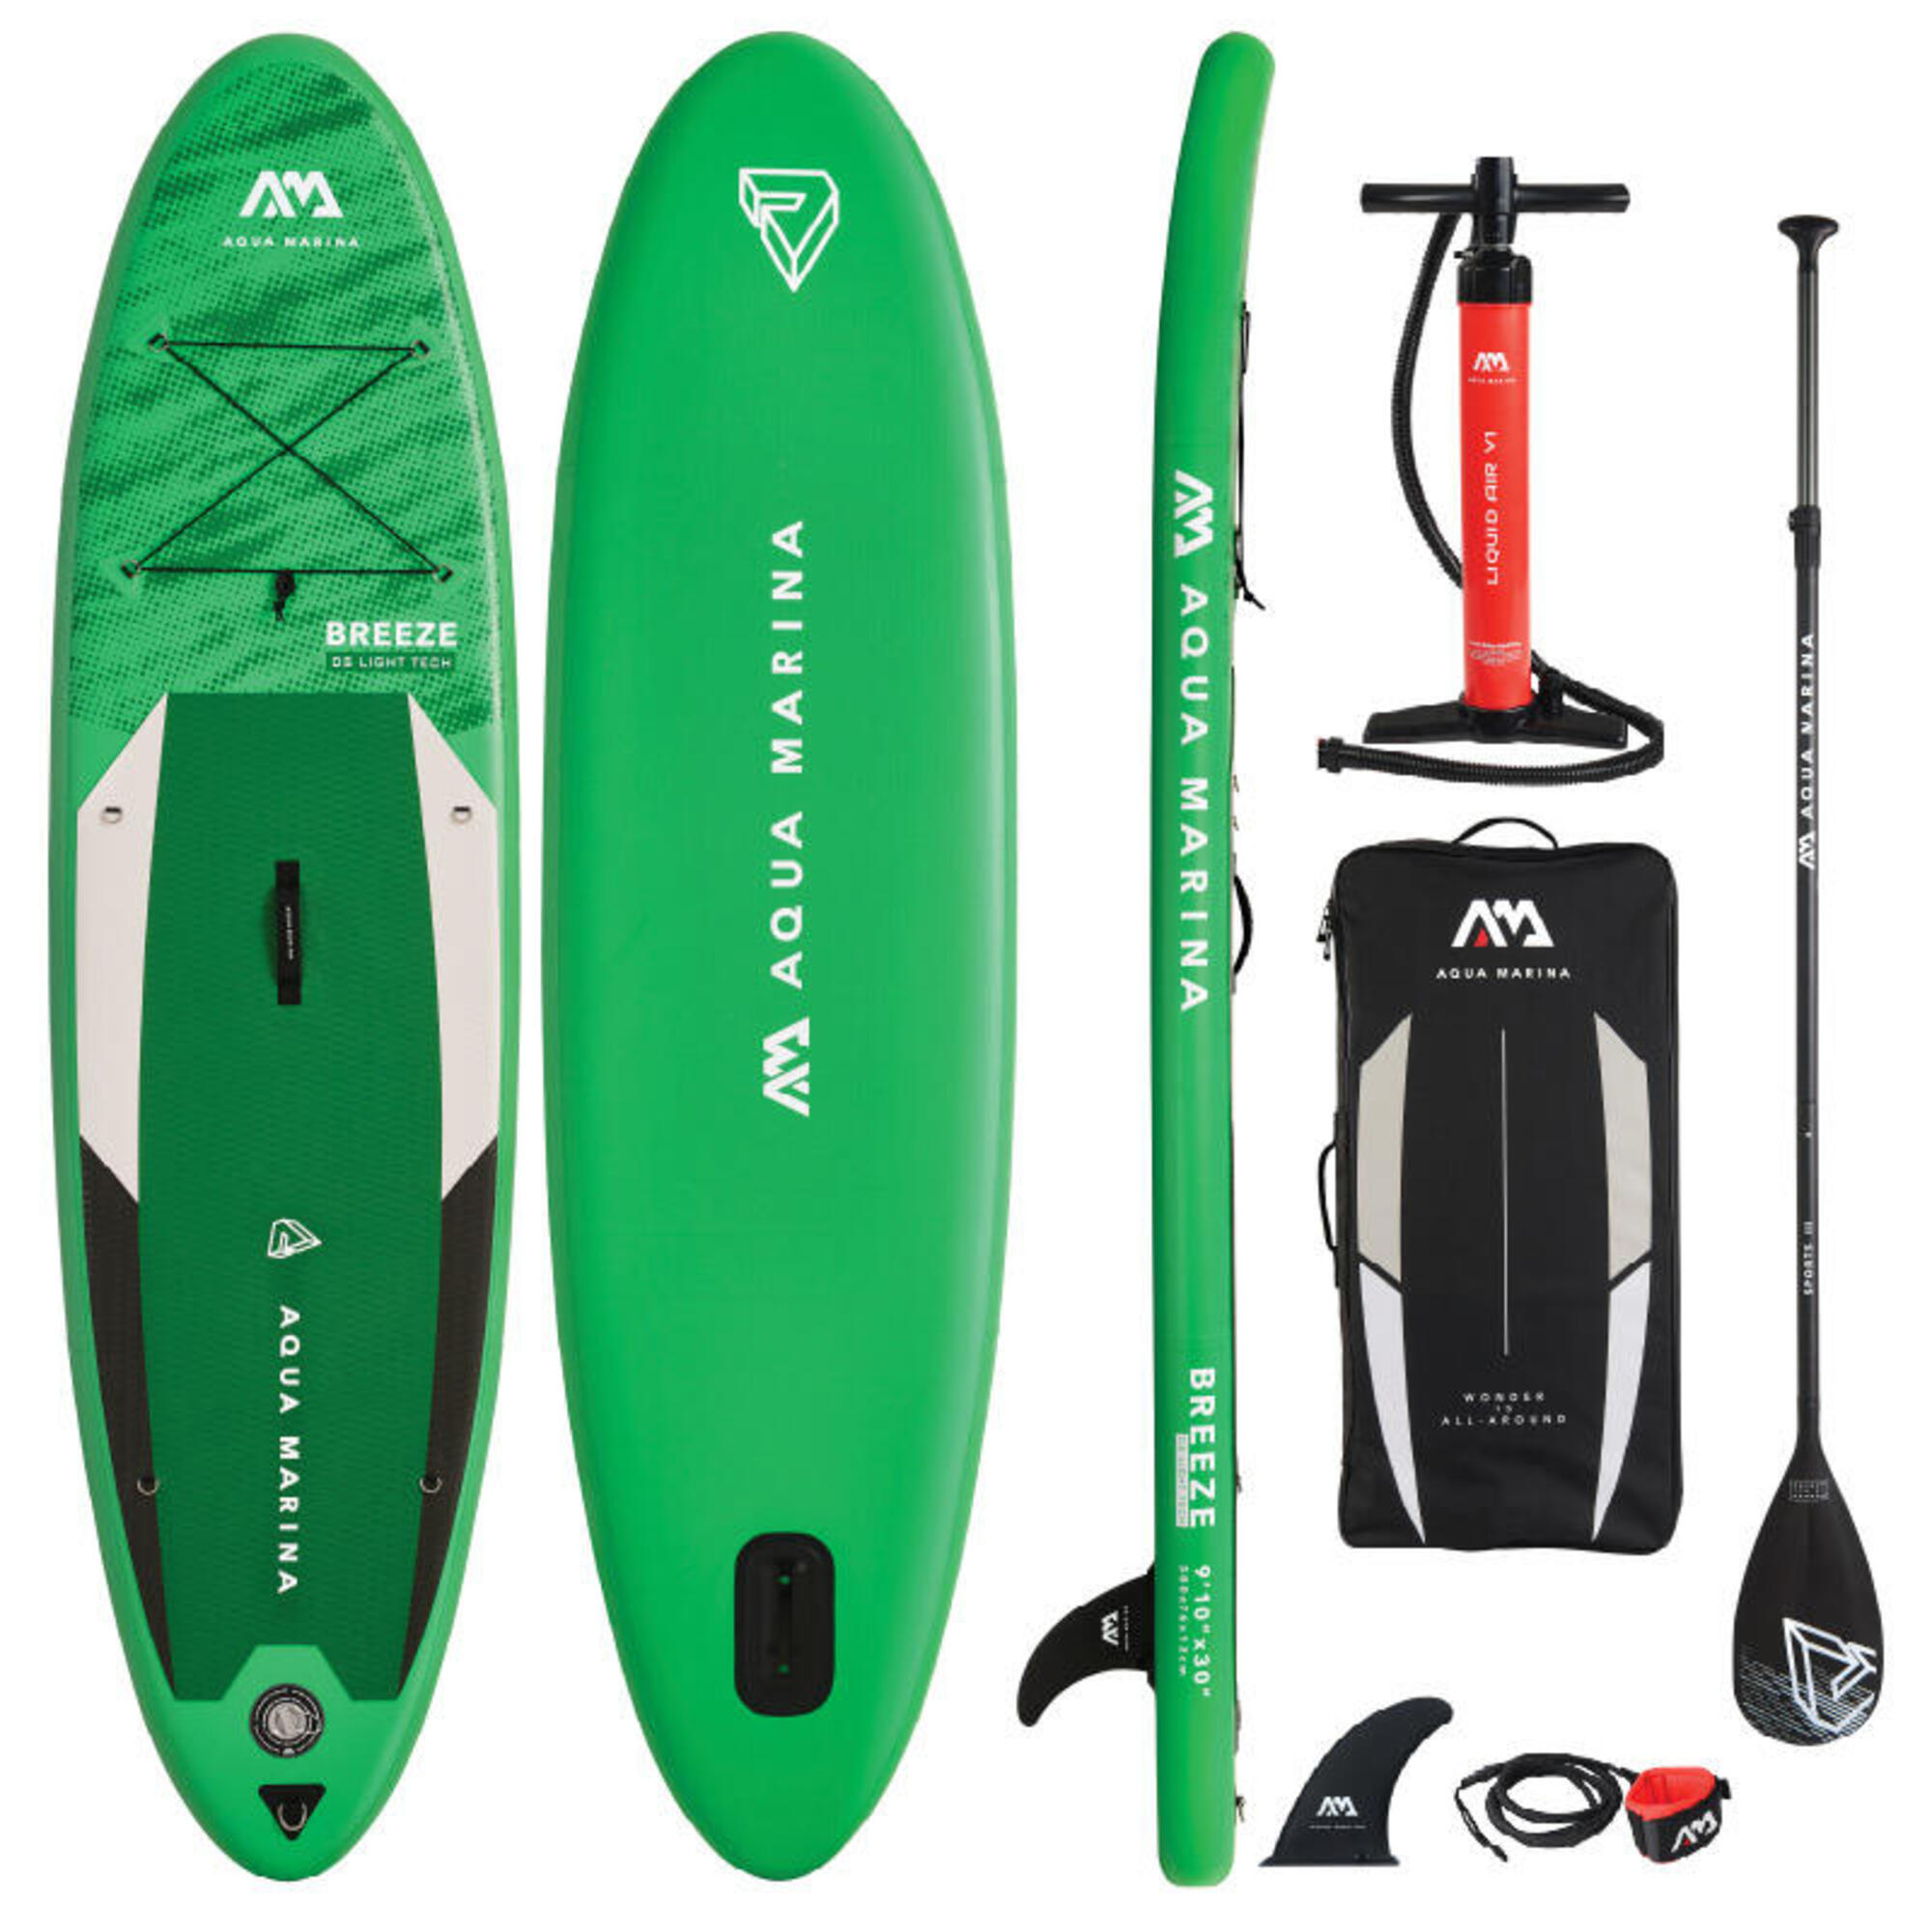 Aqua Marina Breeze 9.10 / 300cm Inflatable Stand Up Paddleboard Package